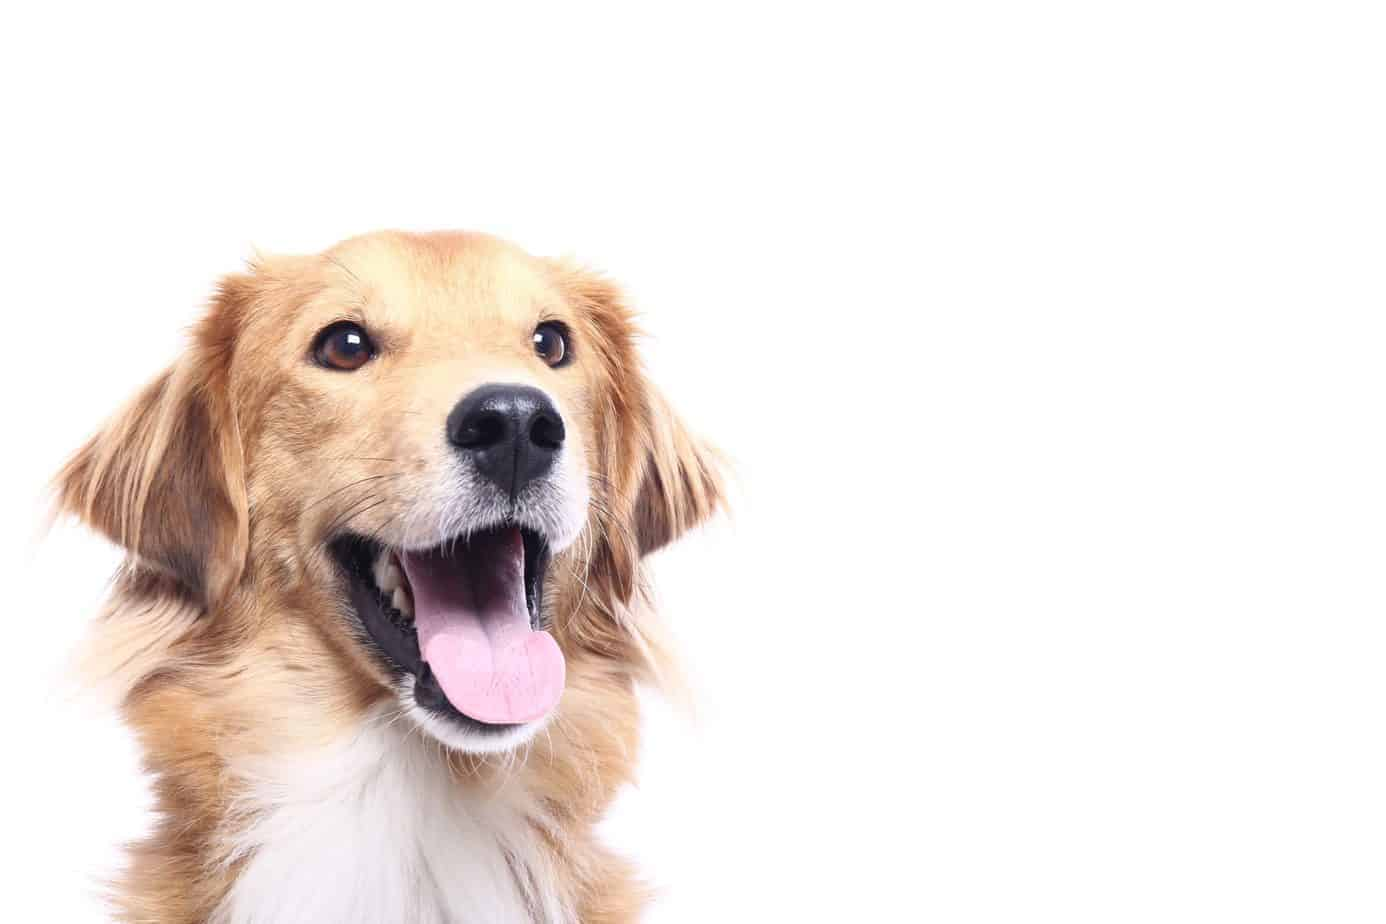 Happy golden retriever. CBD can help dogs overcome issues like separation anxiety or at the very least, feel more relaxed and able to deal with it.